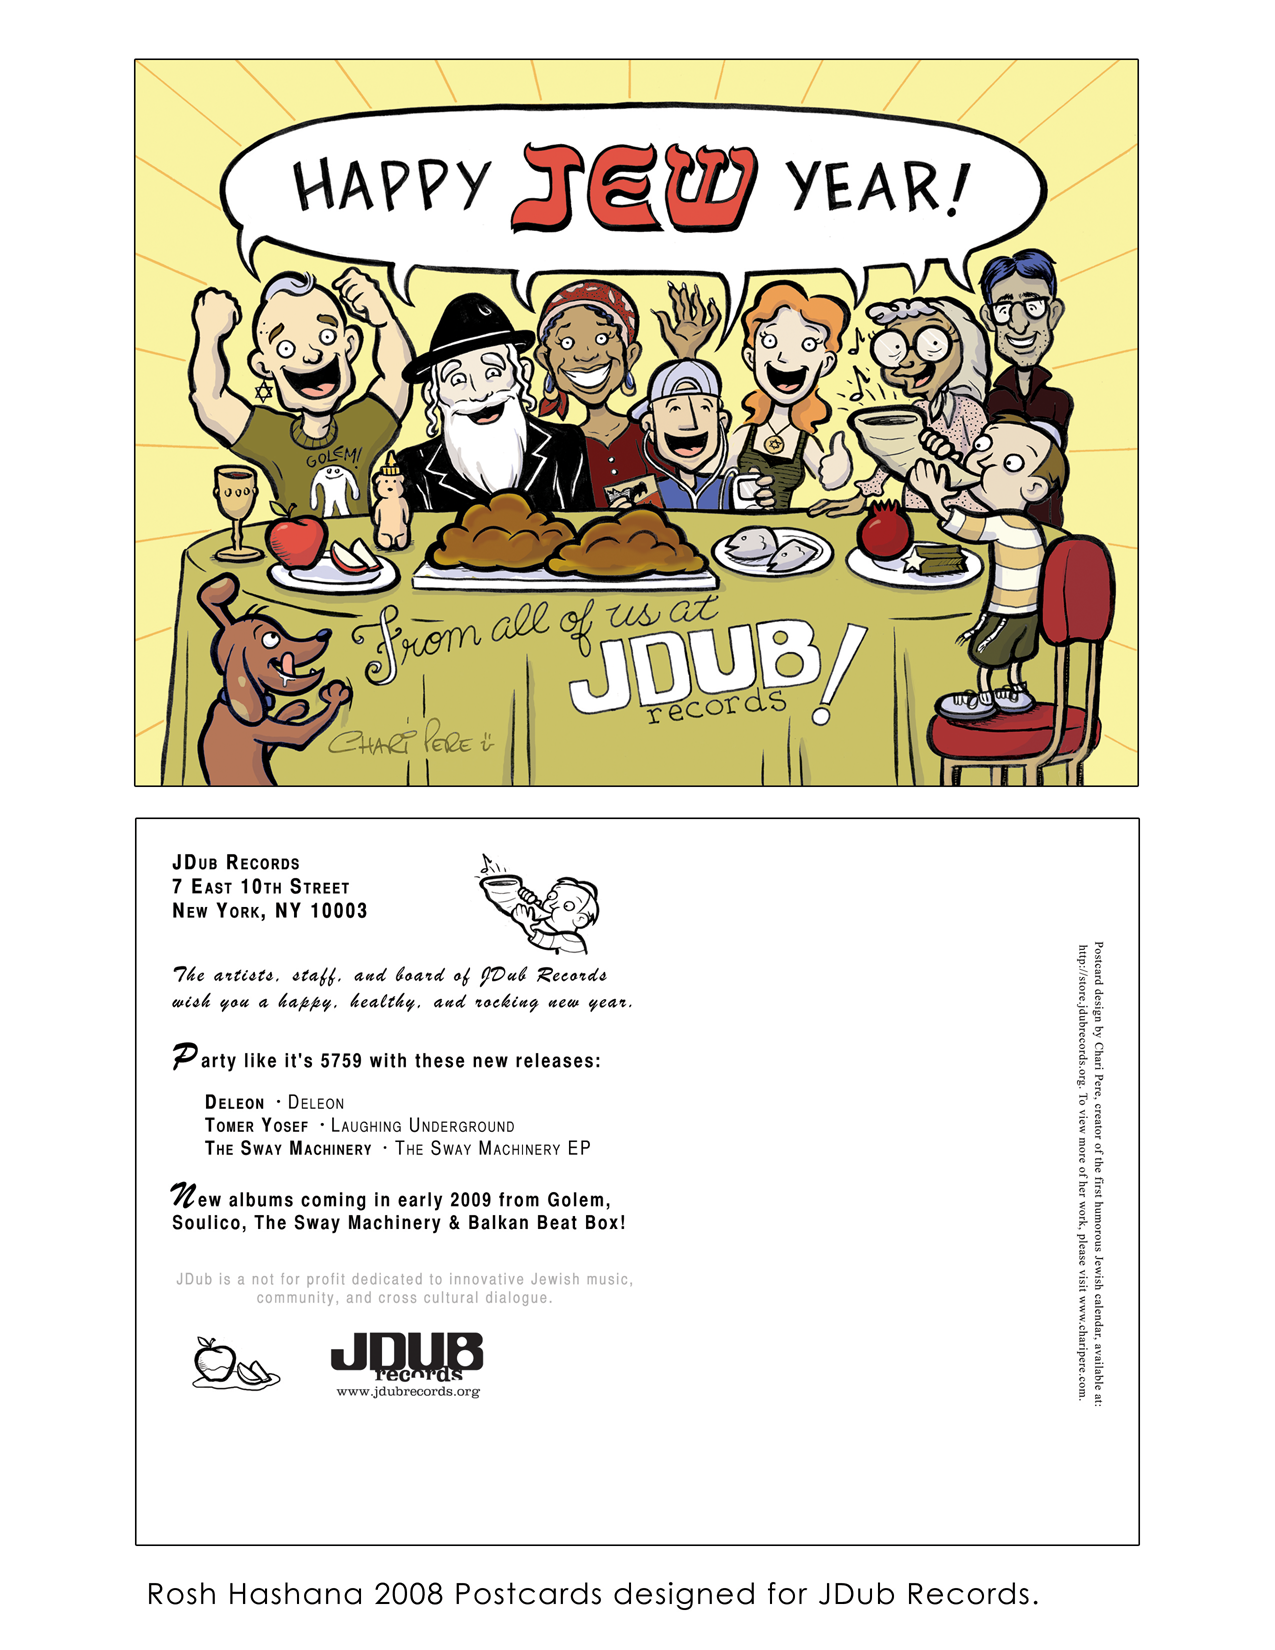 JDUB Records New Year's Card